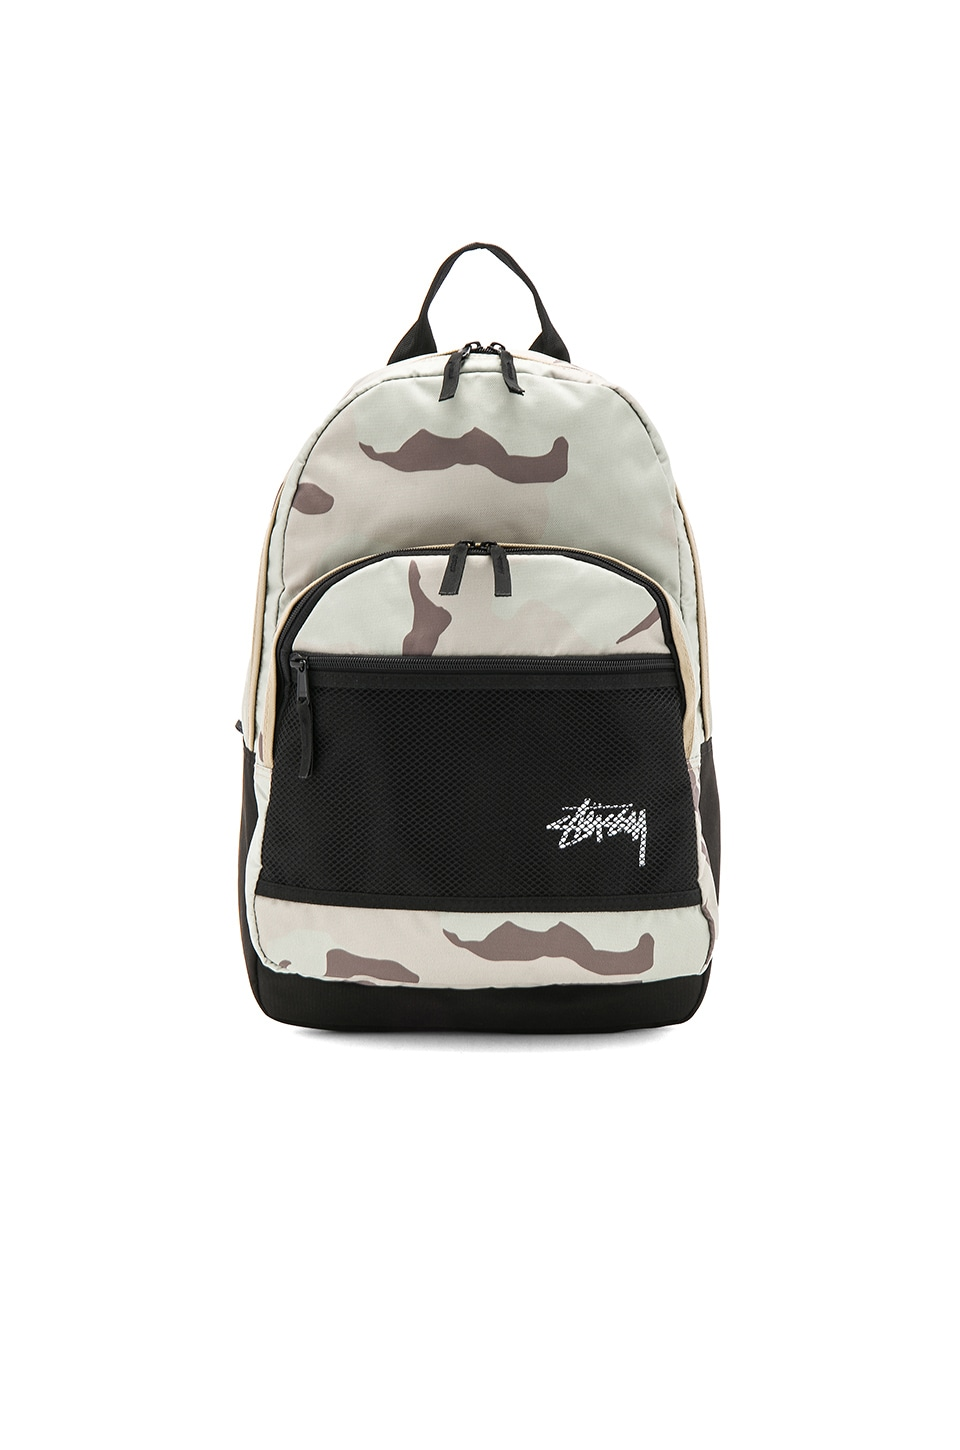 Stock Desert Camo Backpack by Stussy